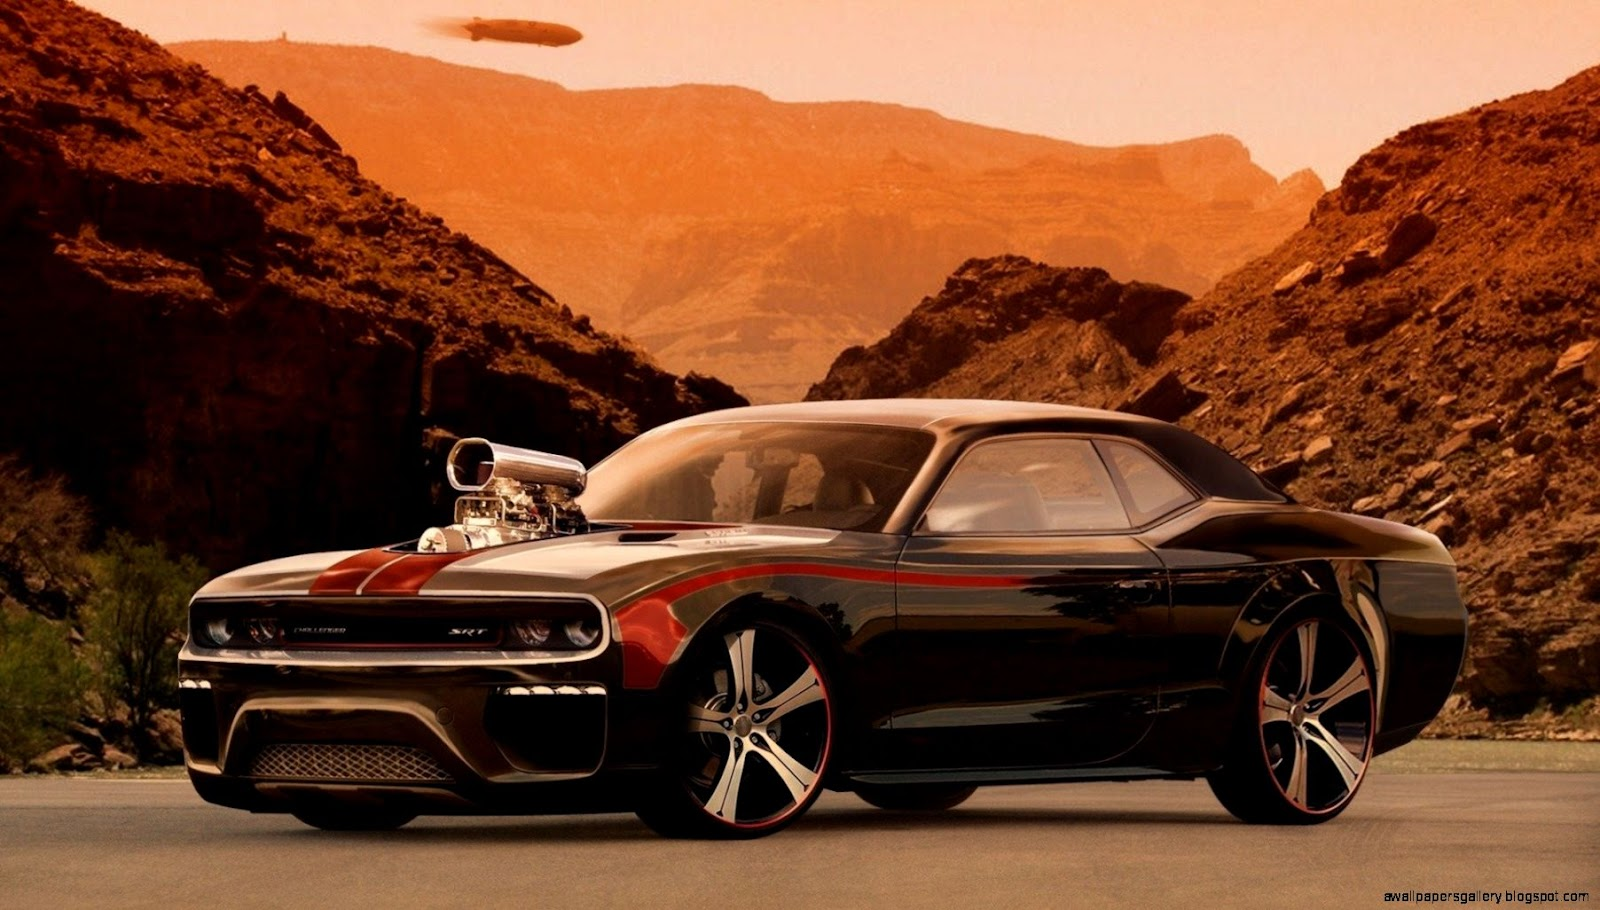 Gto Muscle Car Wallpaper Really Cool Muscle Cars Wallpapers Gallery